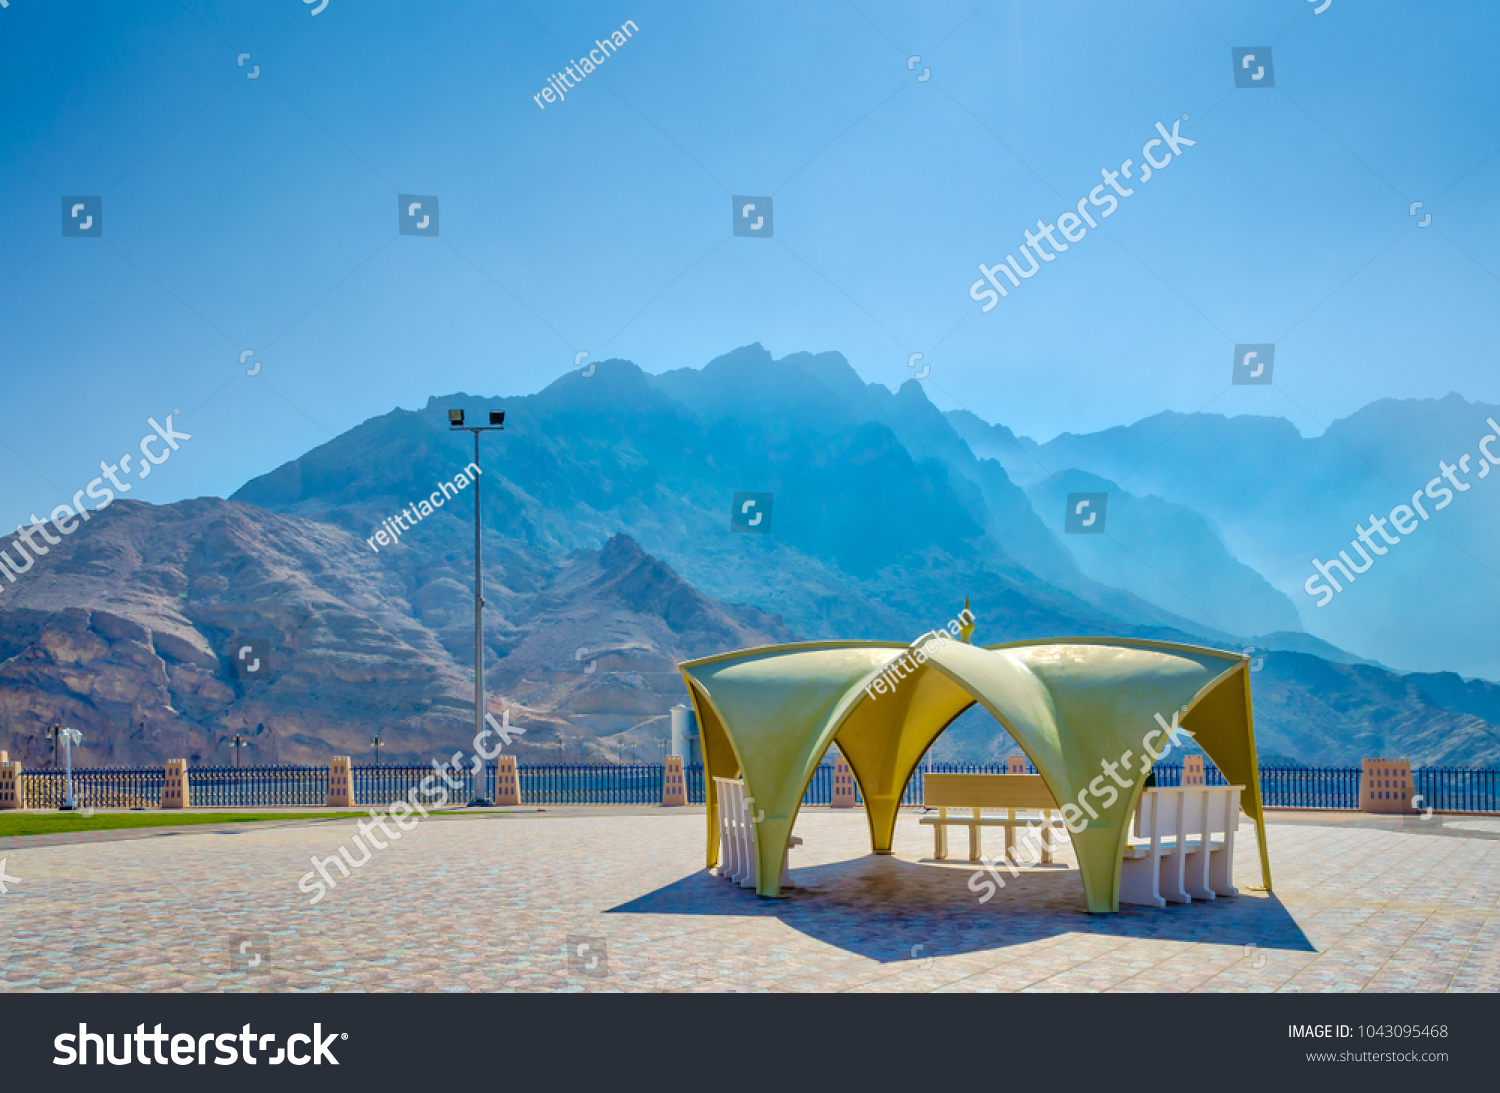 Resting place in the garden and an ideal picnic spot with high mountains and blue sky.